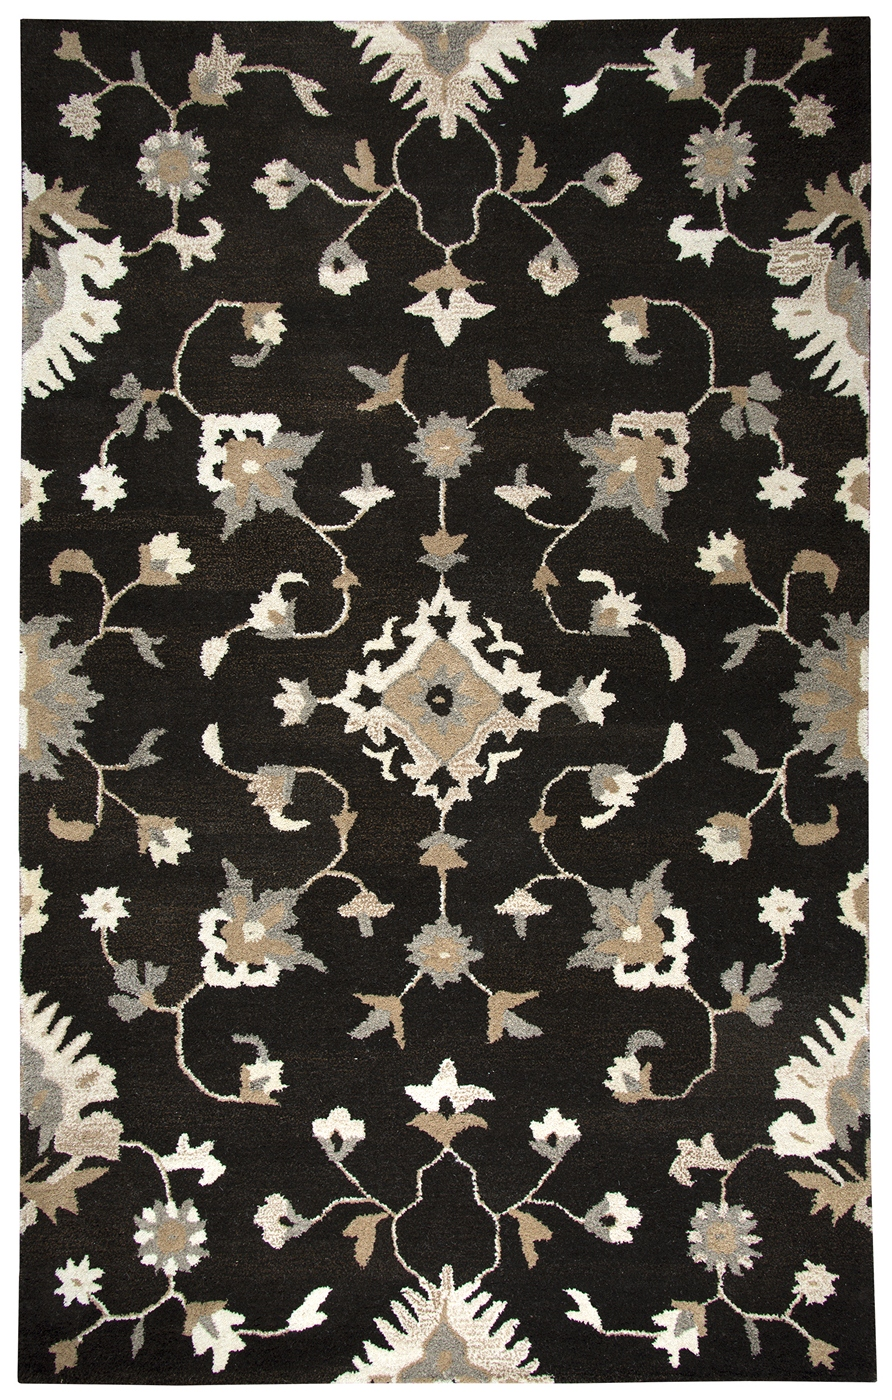 suffolk floral vines wool area rug in brown natural 10 39 x 13 39. Black Bedroom Furniture Sets. Home Design Ideas